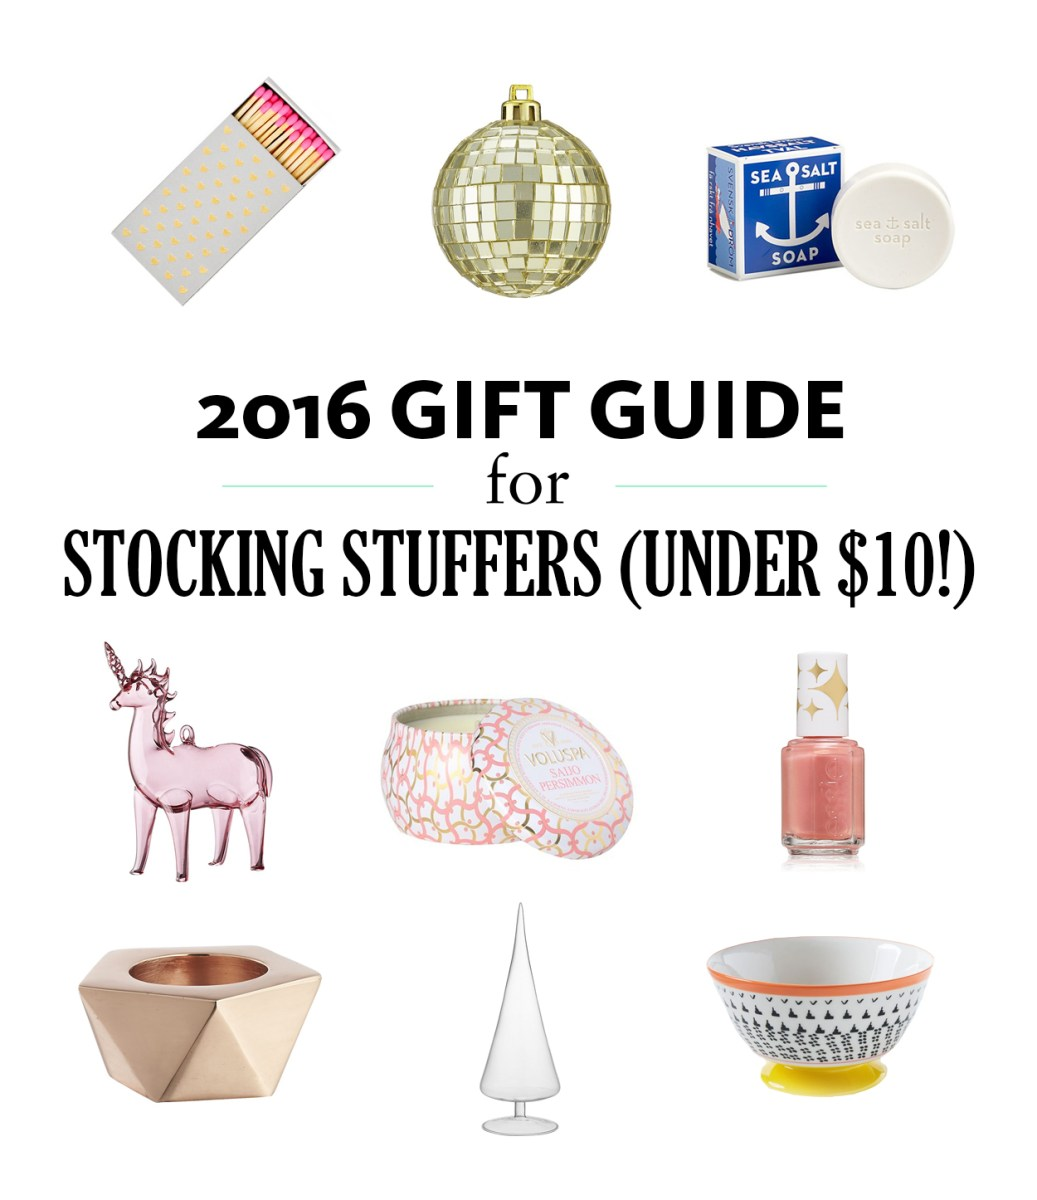 2016 Gift Guide for Stocking Stuffers (Under $25!)